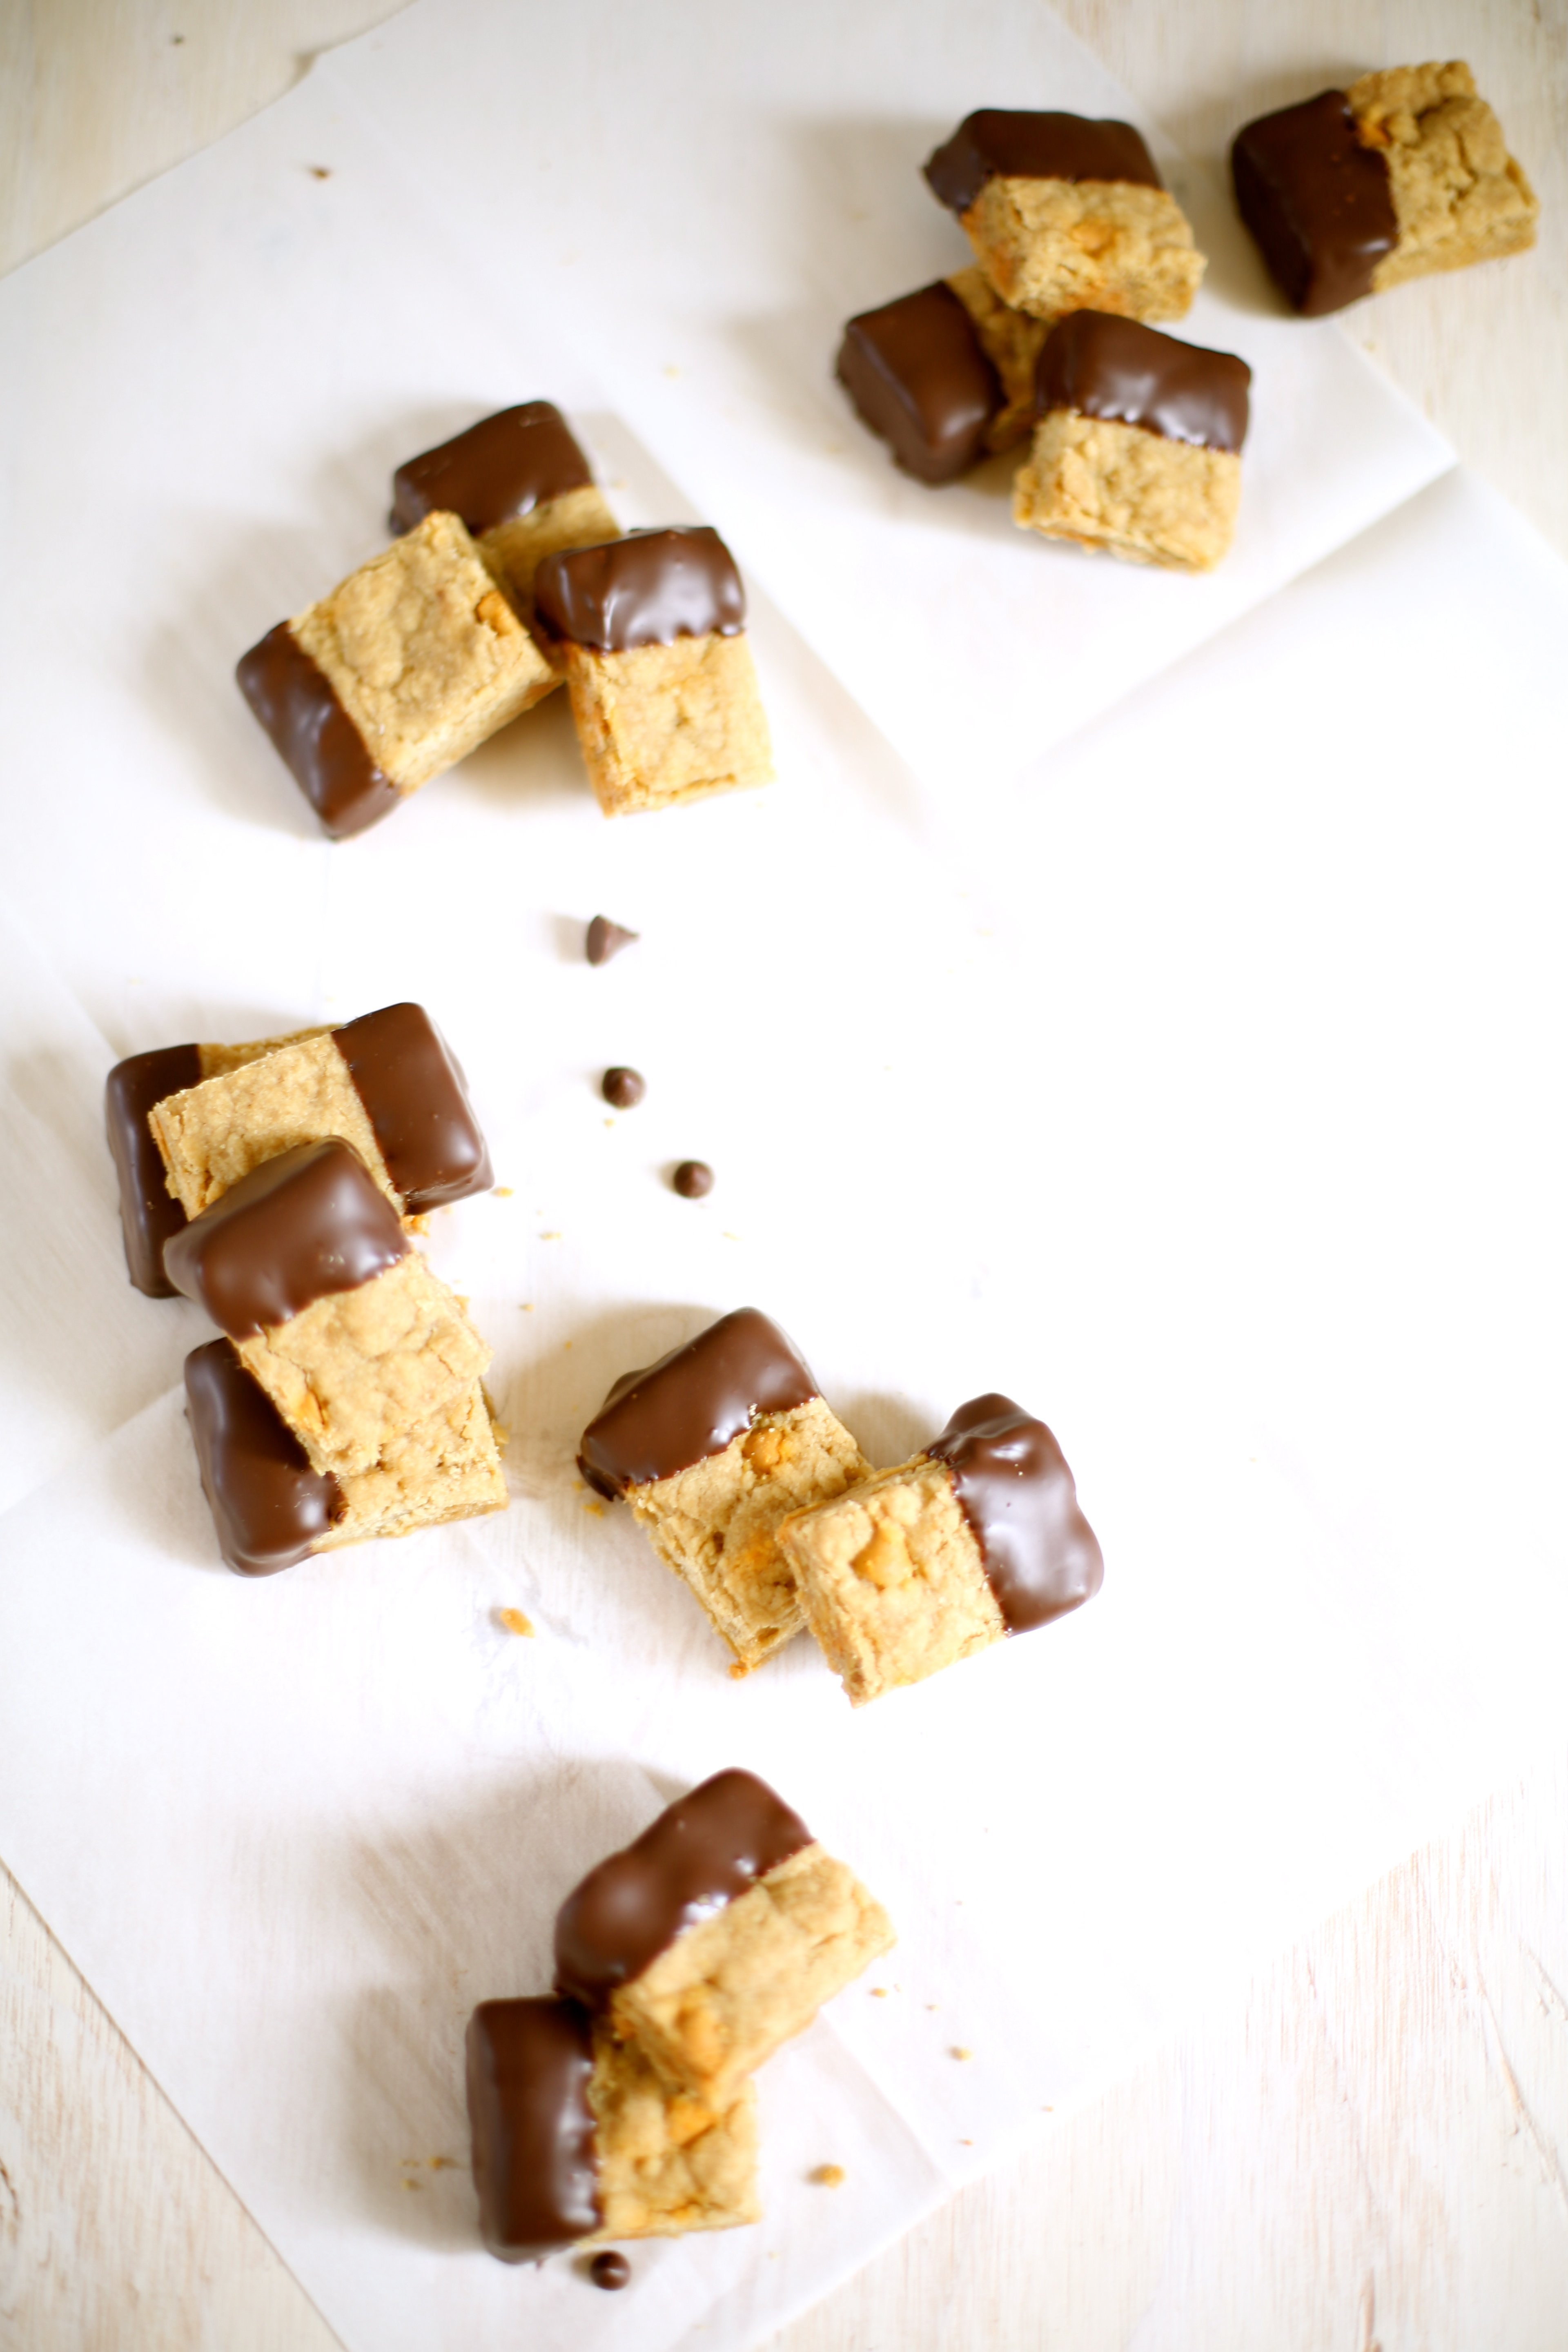 cookies dipped in chocolate on a white table